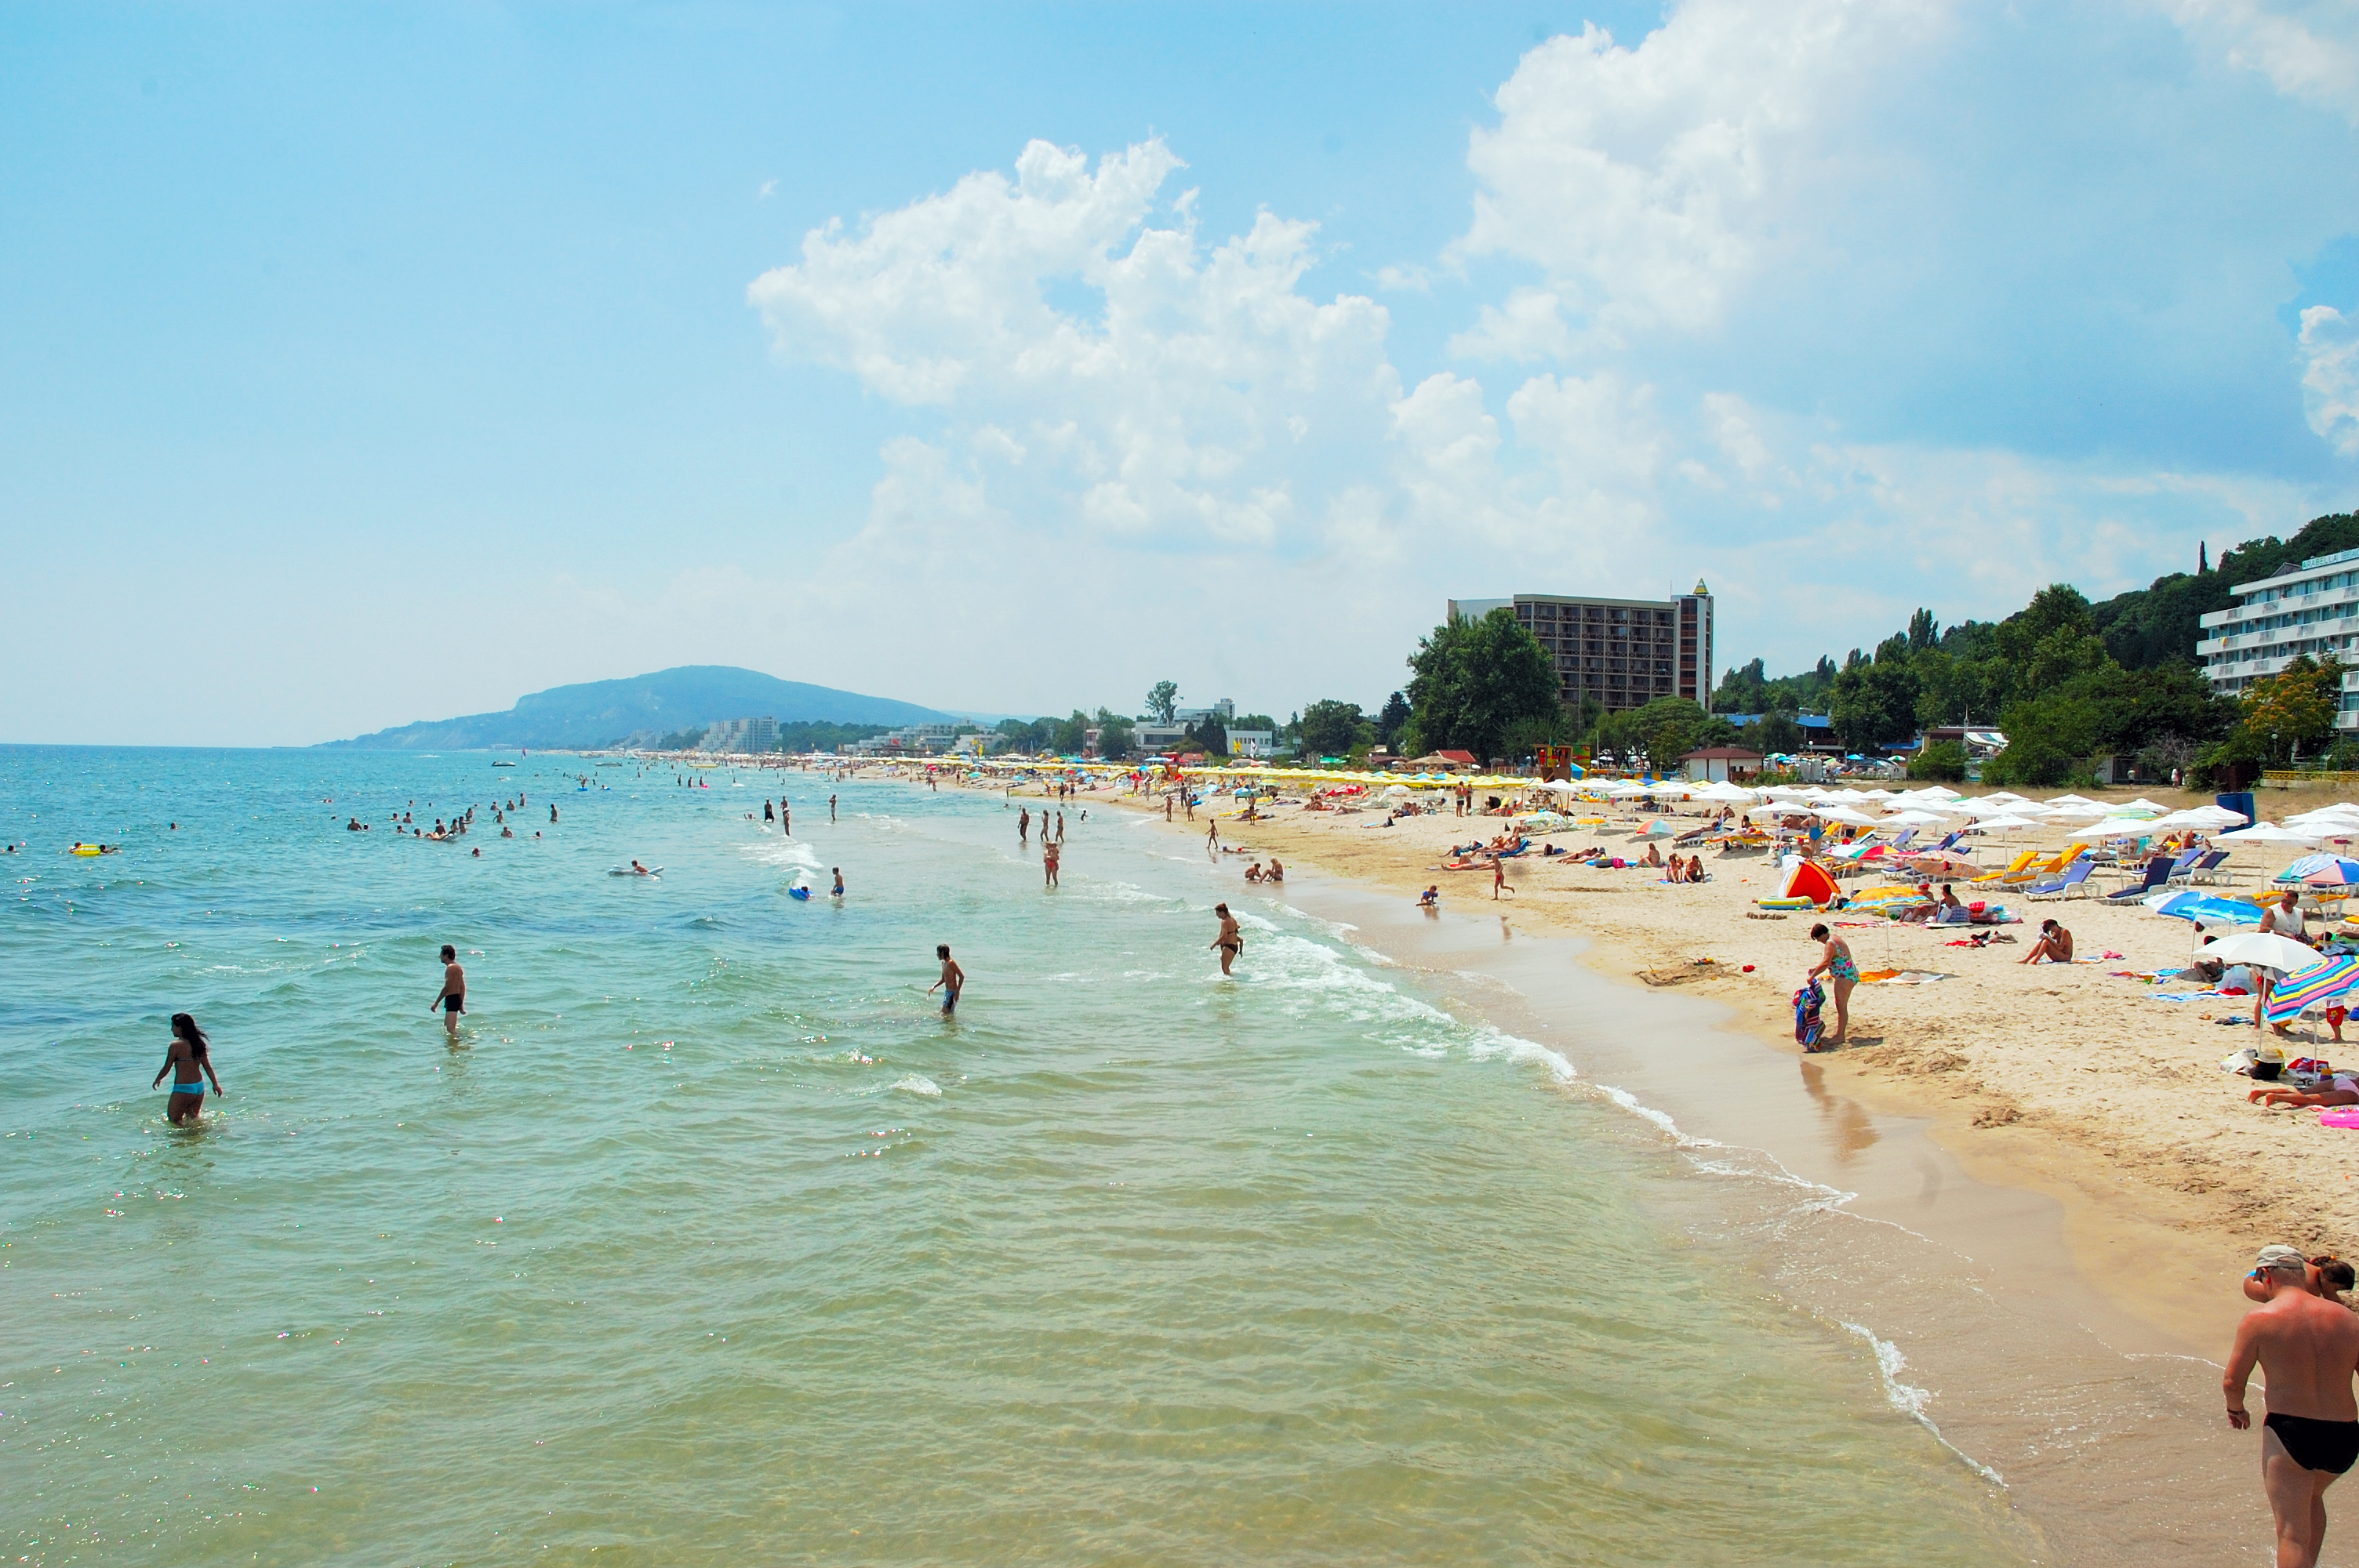 Beaches in Burgas, Bulgaria are a favourite for a cheap last-minute summer holiday from Ireland